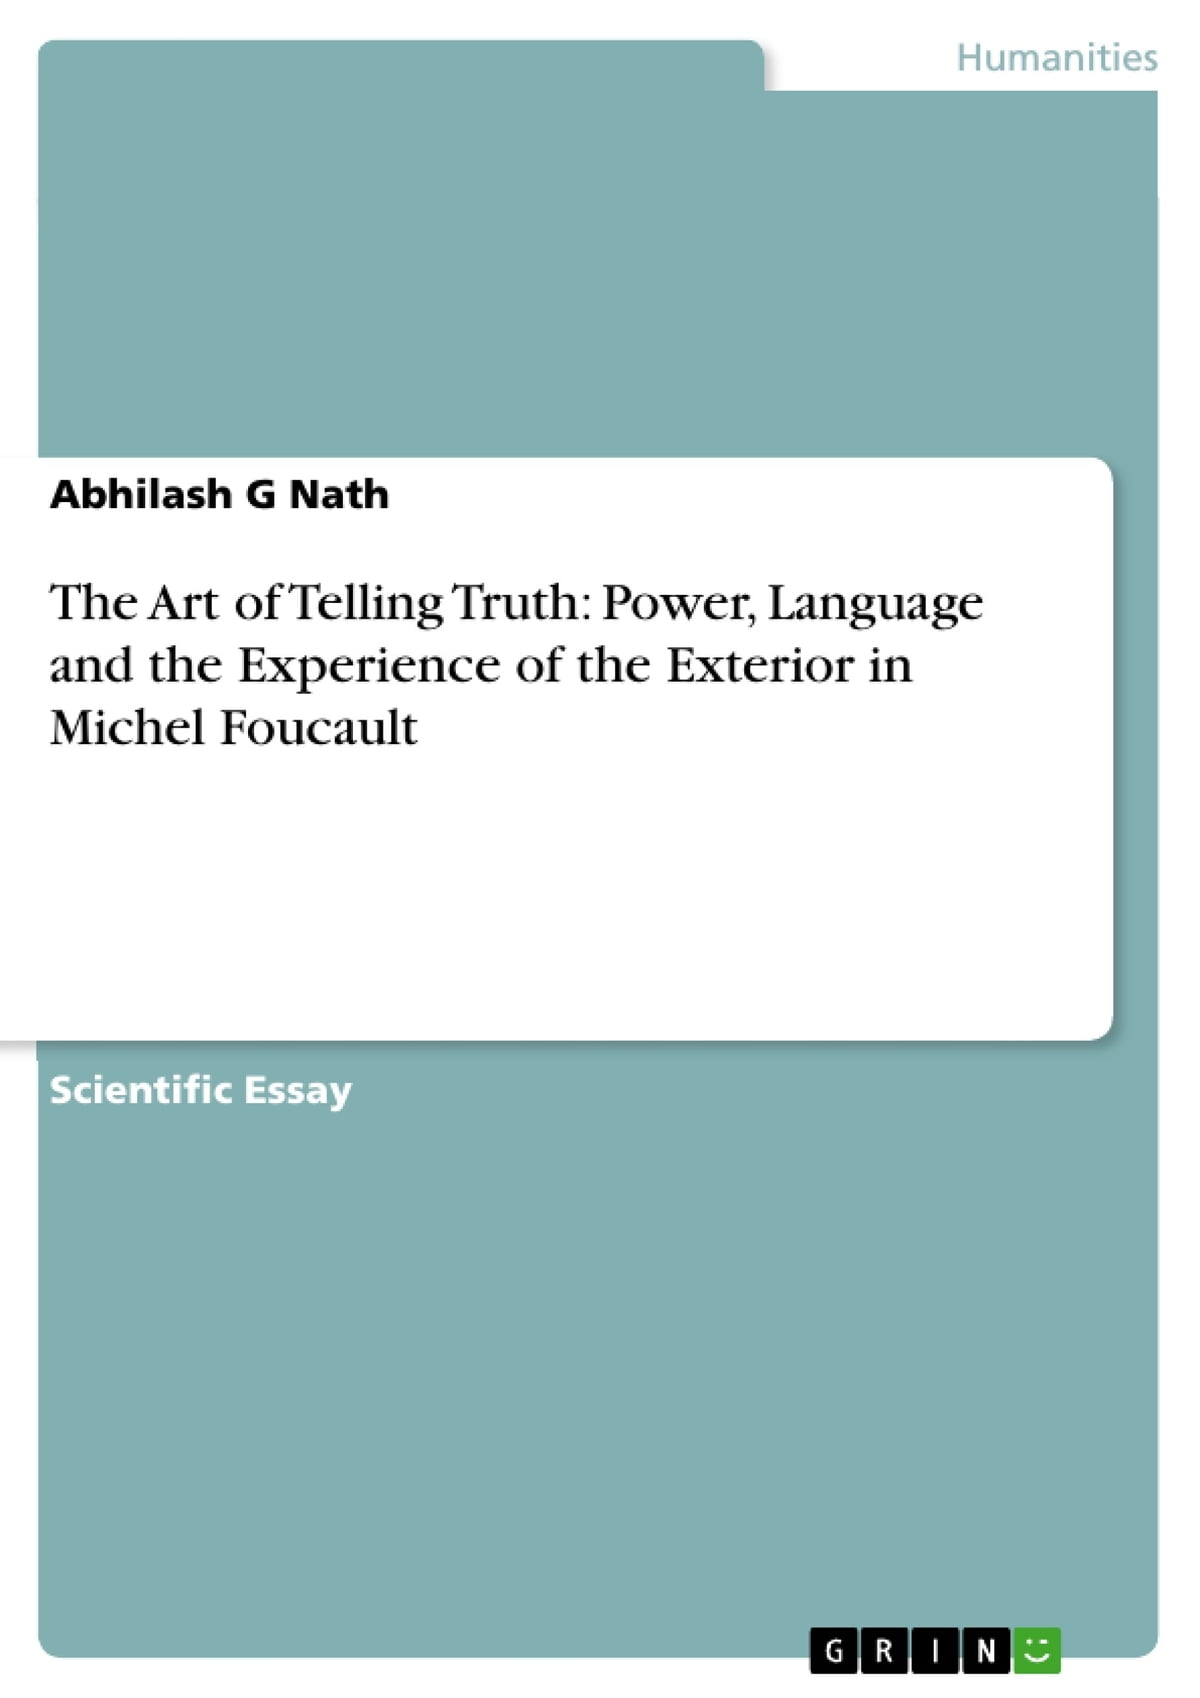 the art of telling truth power language and the experience of  the art of telling truth power language and the experience of the exterior in michel foucault ebook by abhilash g nath 9783640884889 rakuten kobo